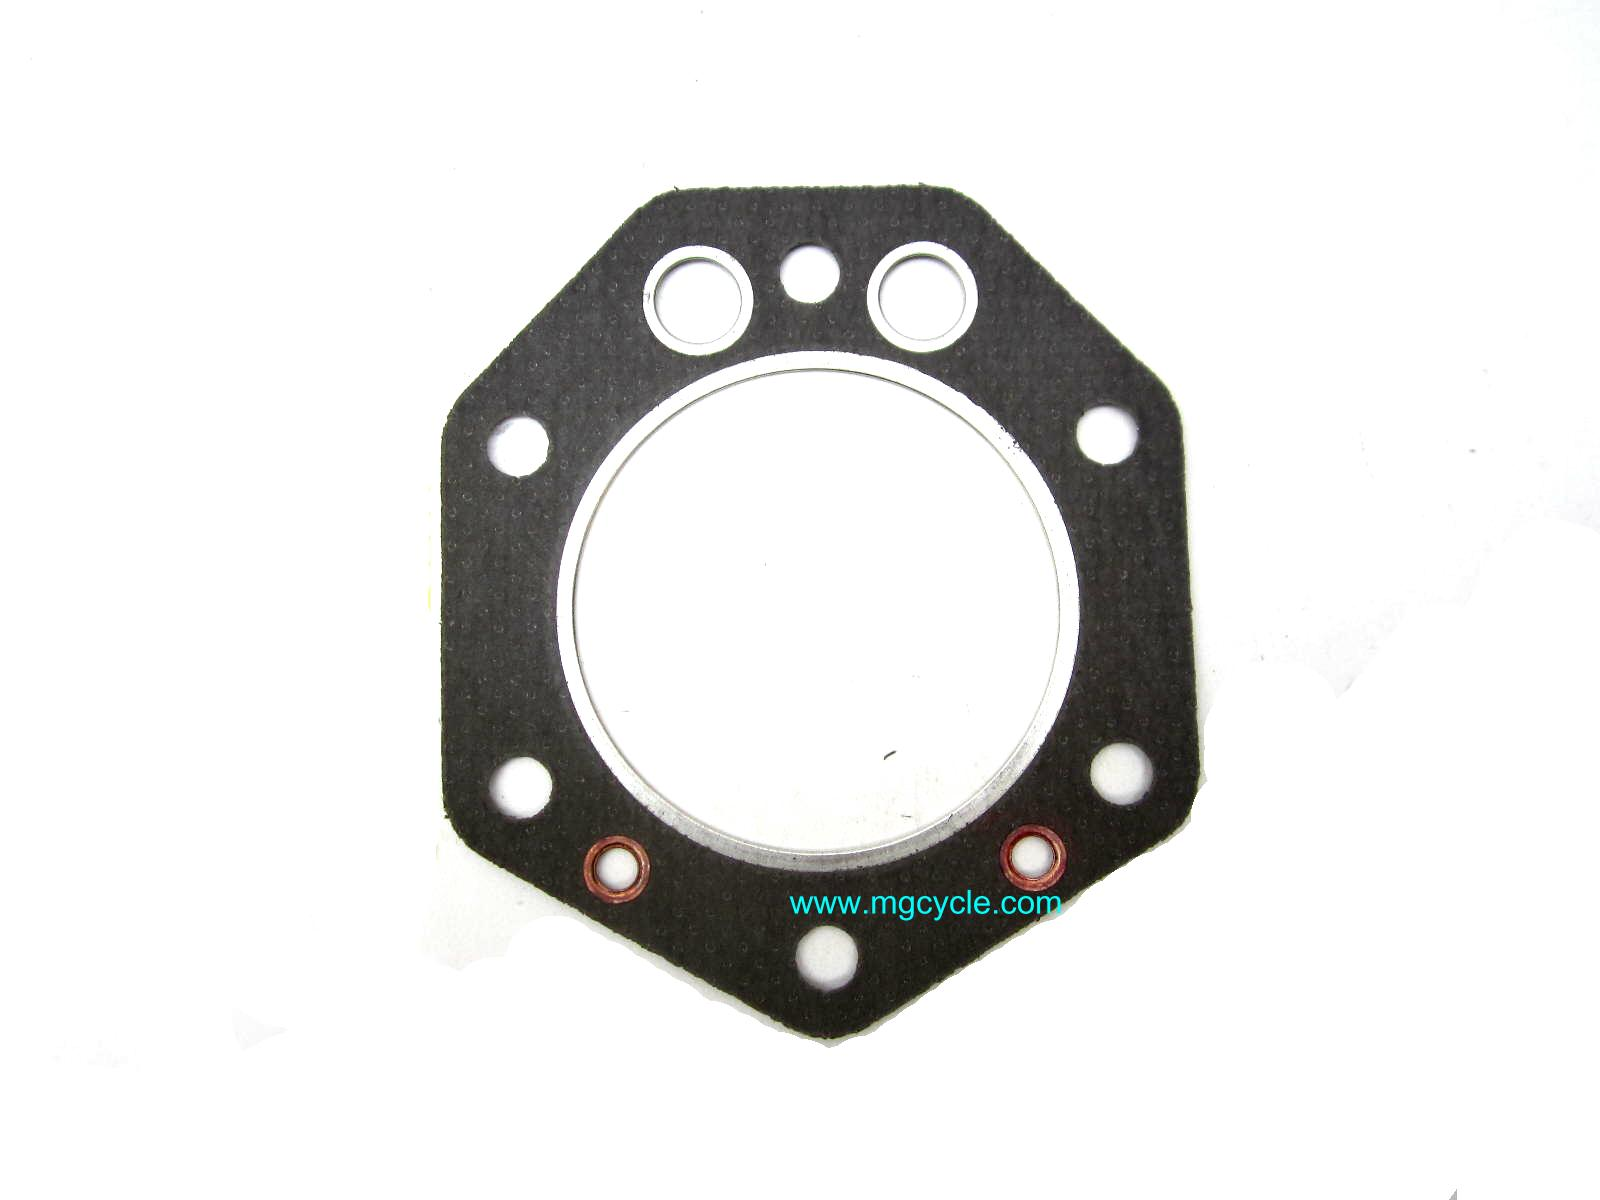 Head gasket for 850 square fins